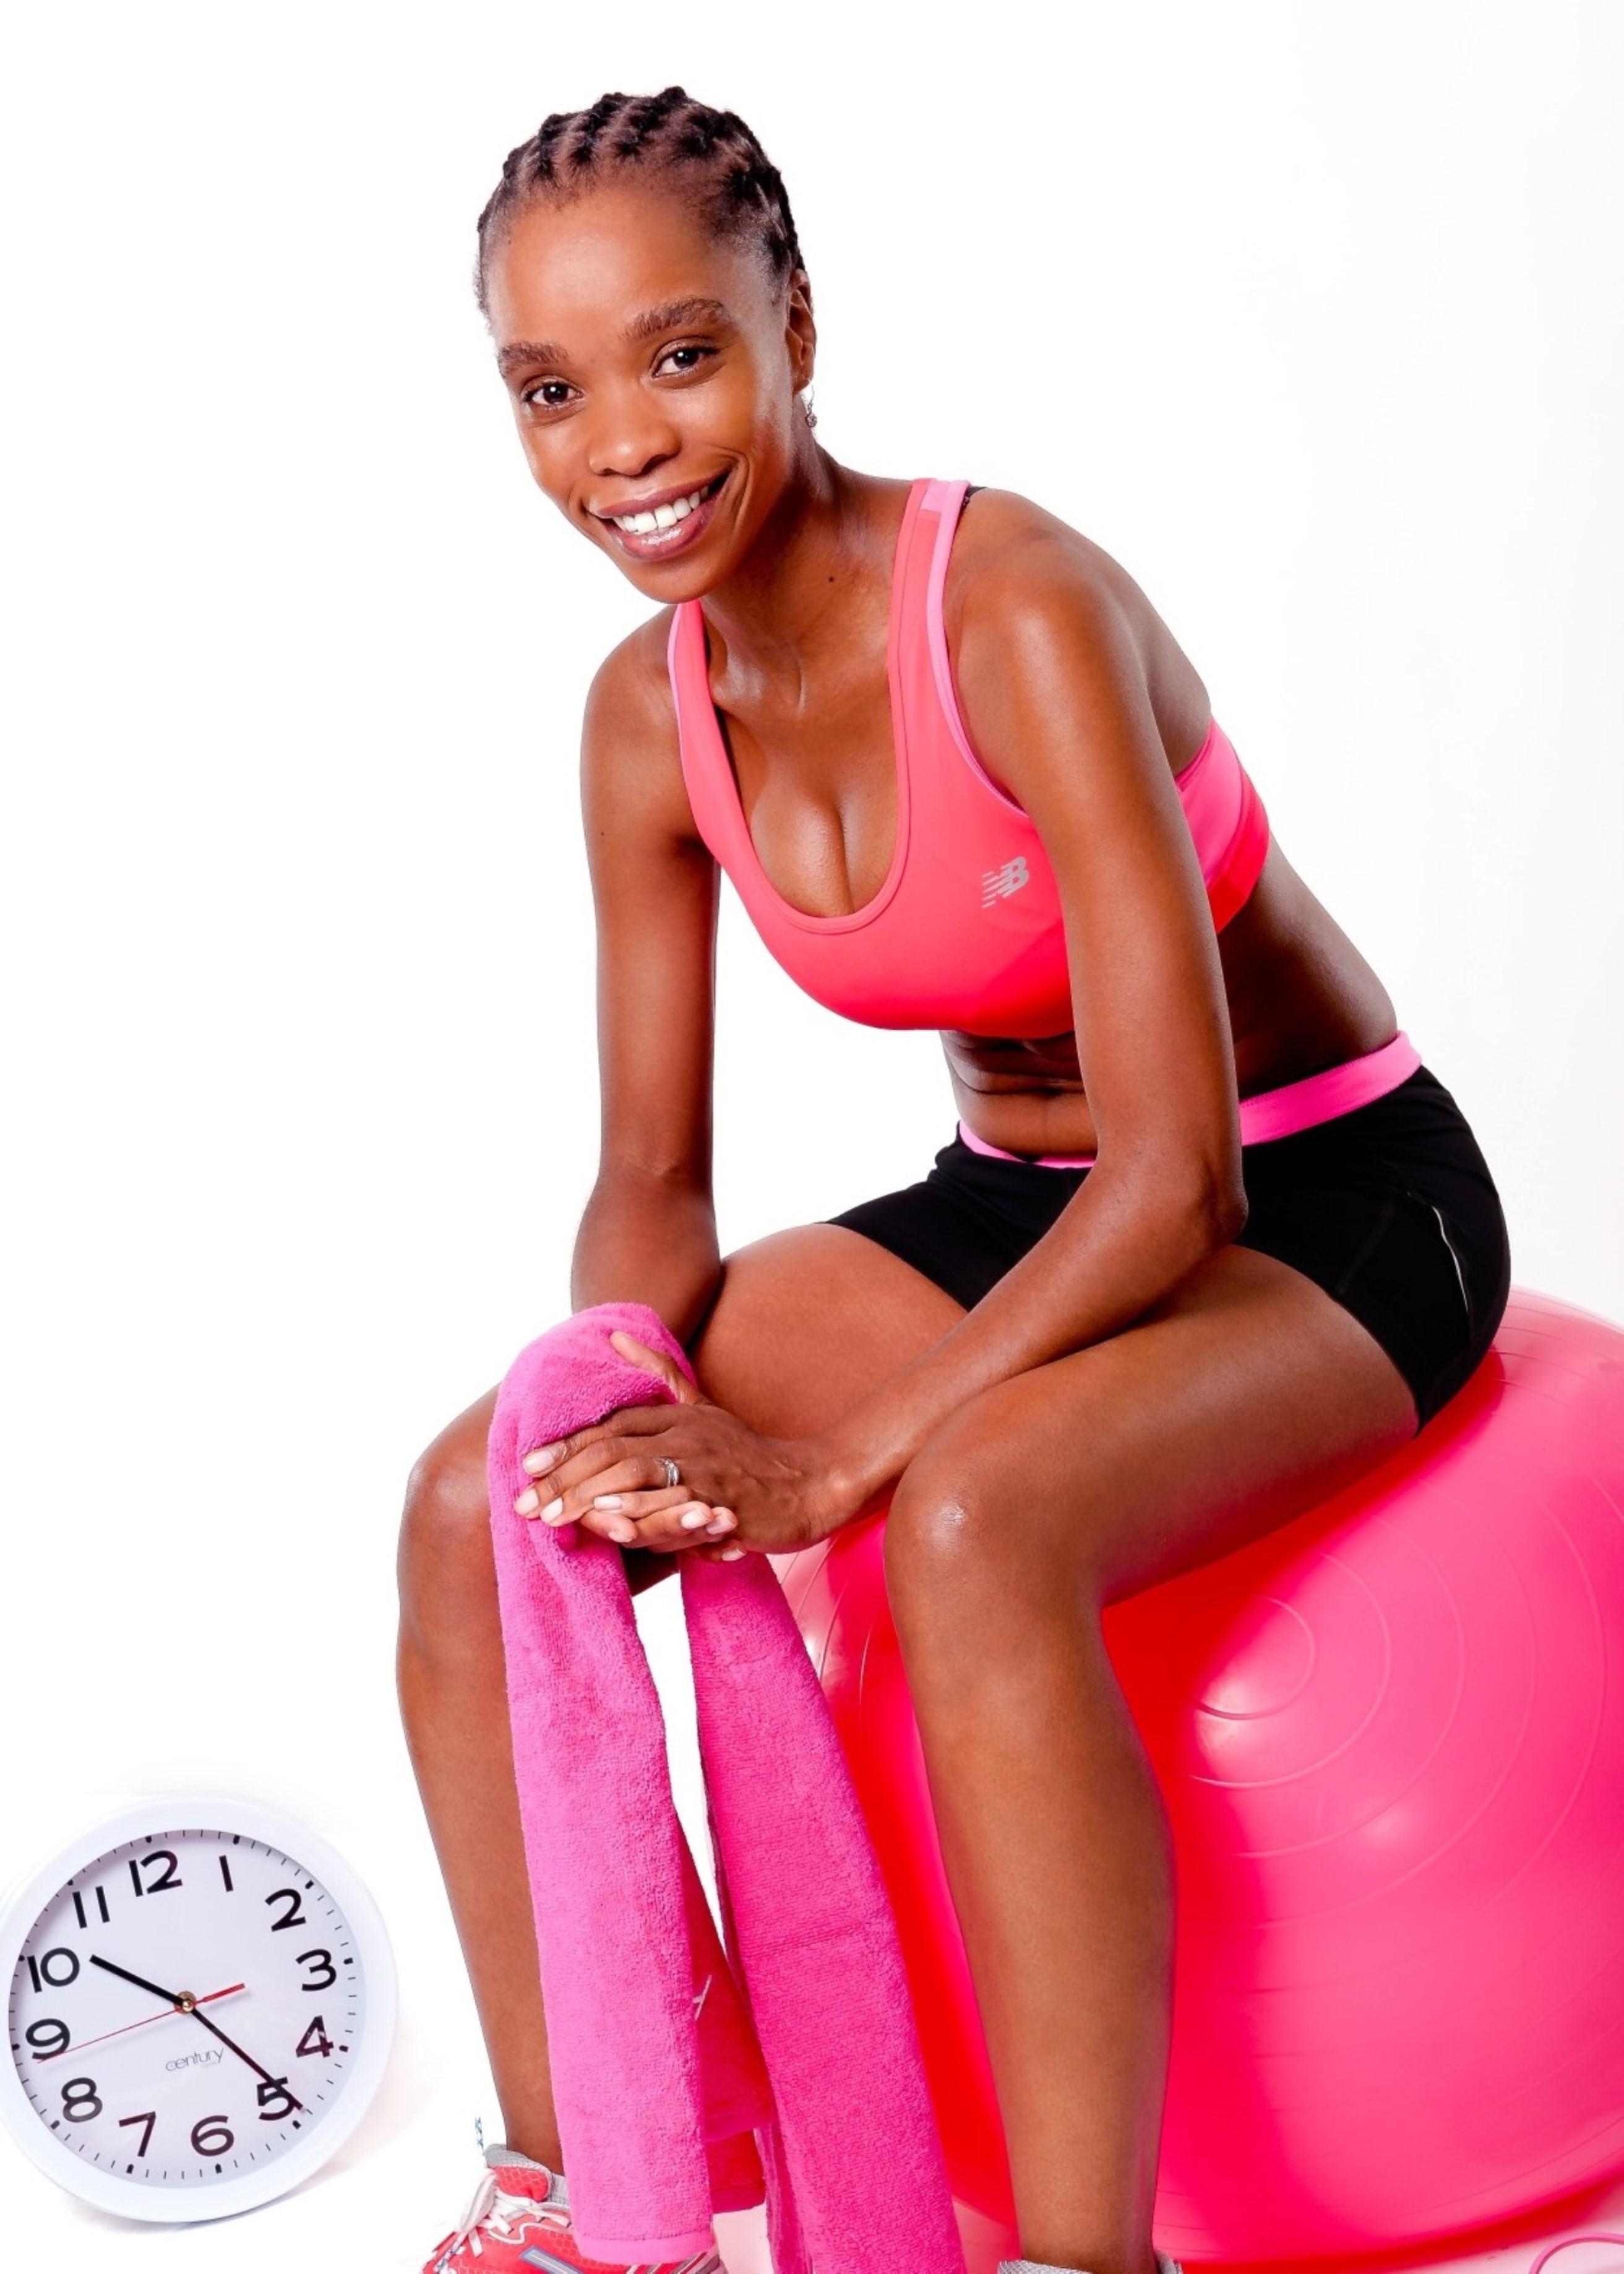 Radio personality, Phindi Gule is proud to be an ambassador of the exciting Totalsports Women's Race series that will take place in Durban (Sunday, 19 July 2015), Johannesburg (Sunday, 09 August 2015) and Stellenbosch (Monday, 10 August 2015).  Photo Credit:  Sbonelo Ngcobo